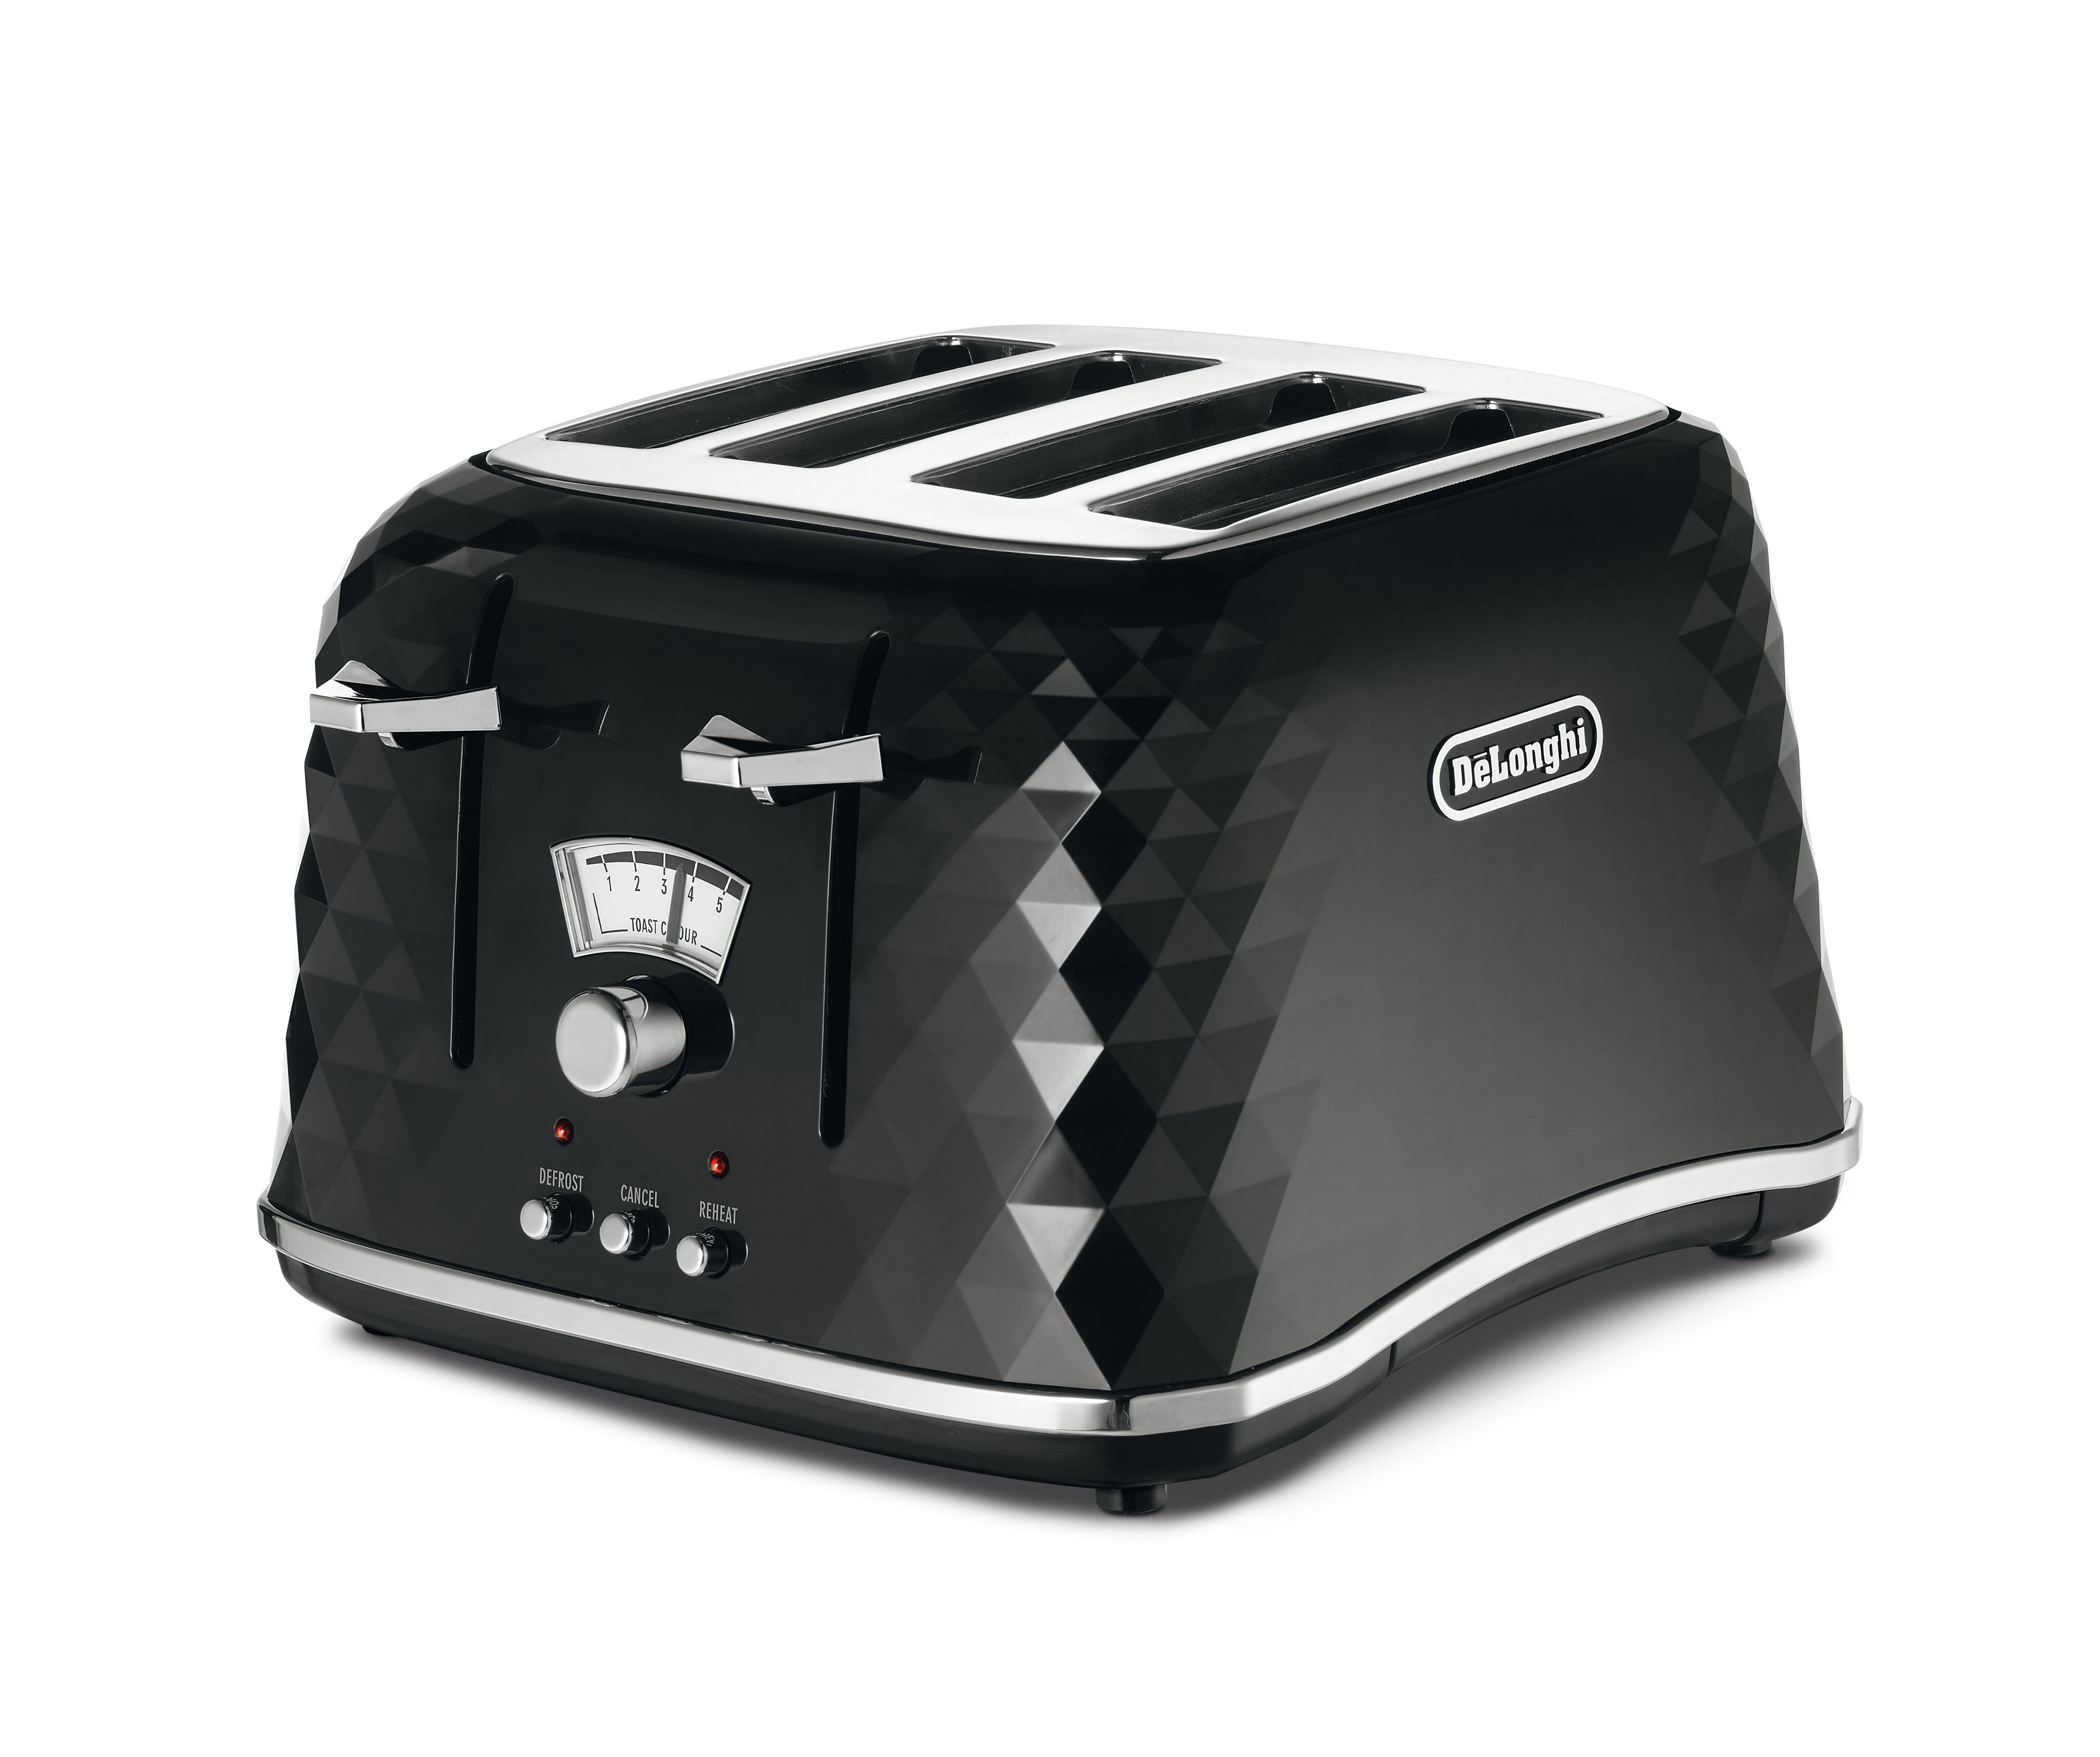 Brillante Black 4-Slice Toaster CTJ4003.B